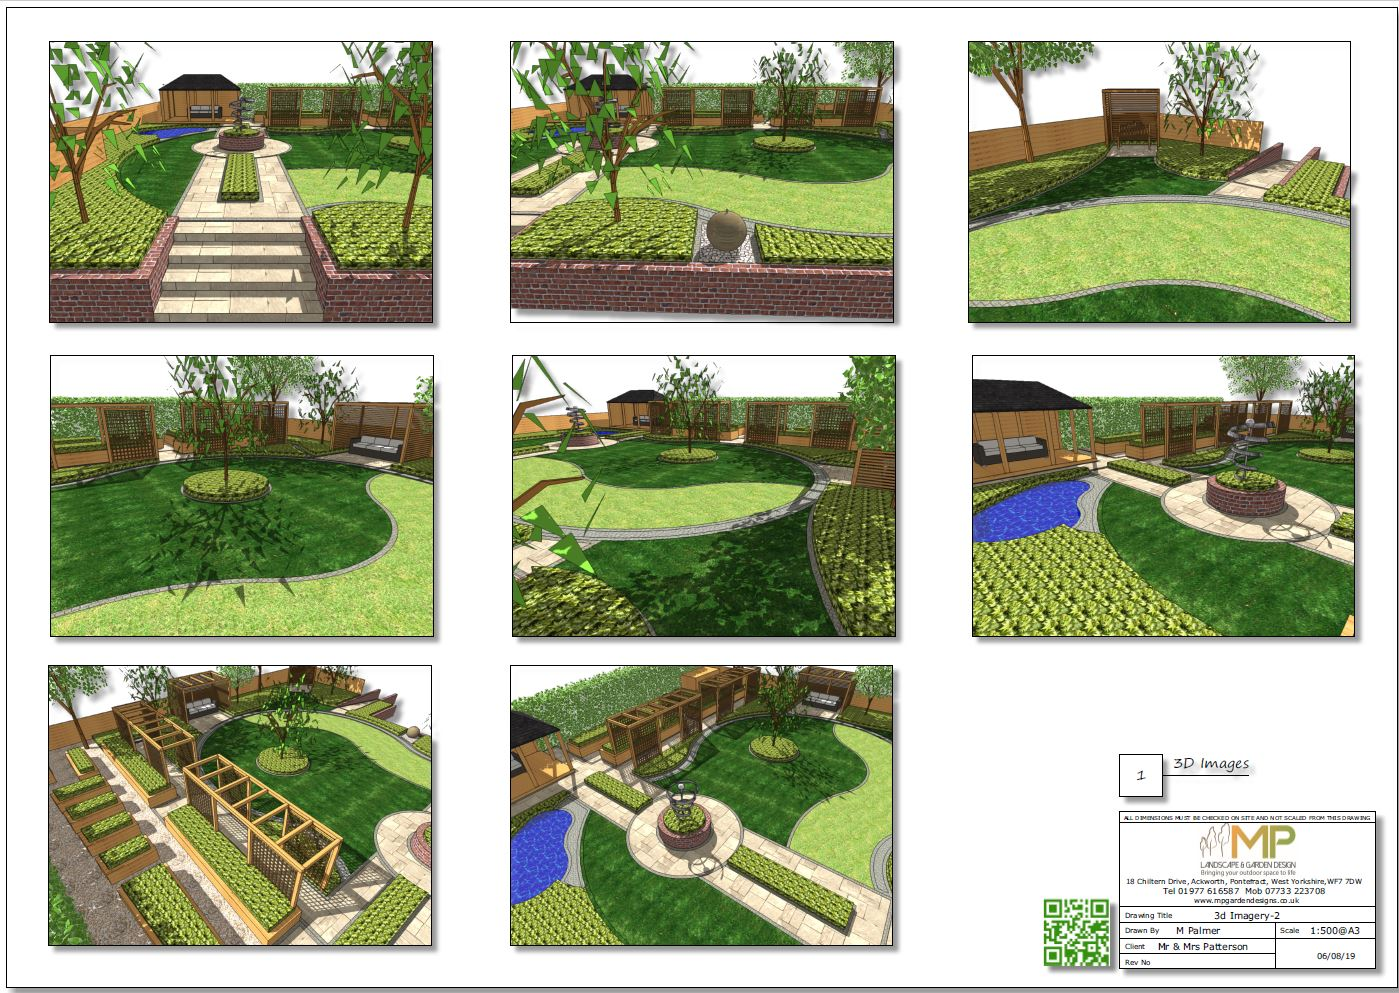 6, Colour 3D images, concept plan 2 for a rear garden in Knottingley